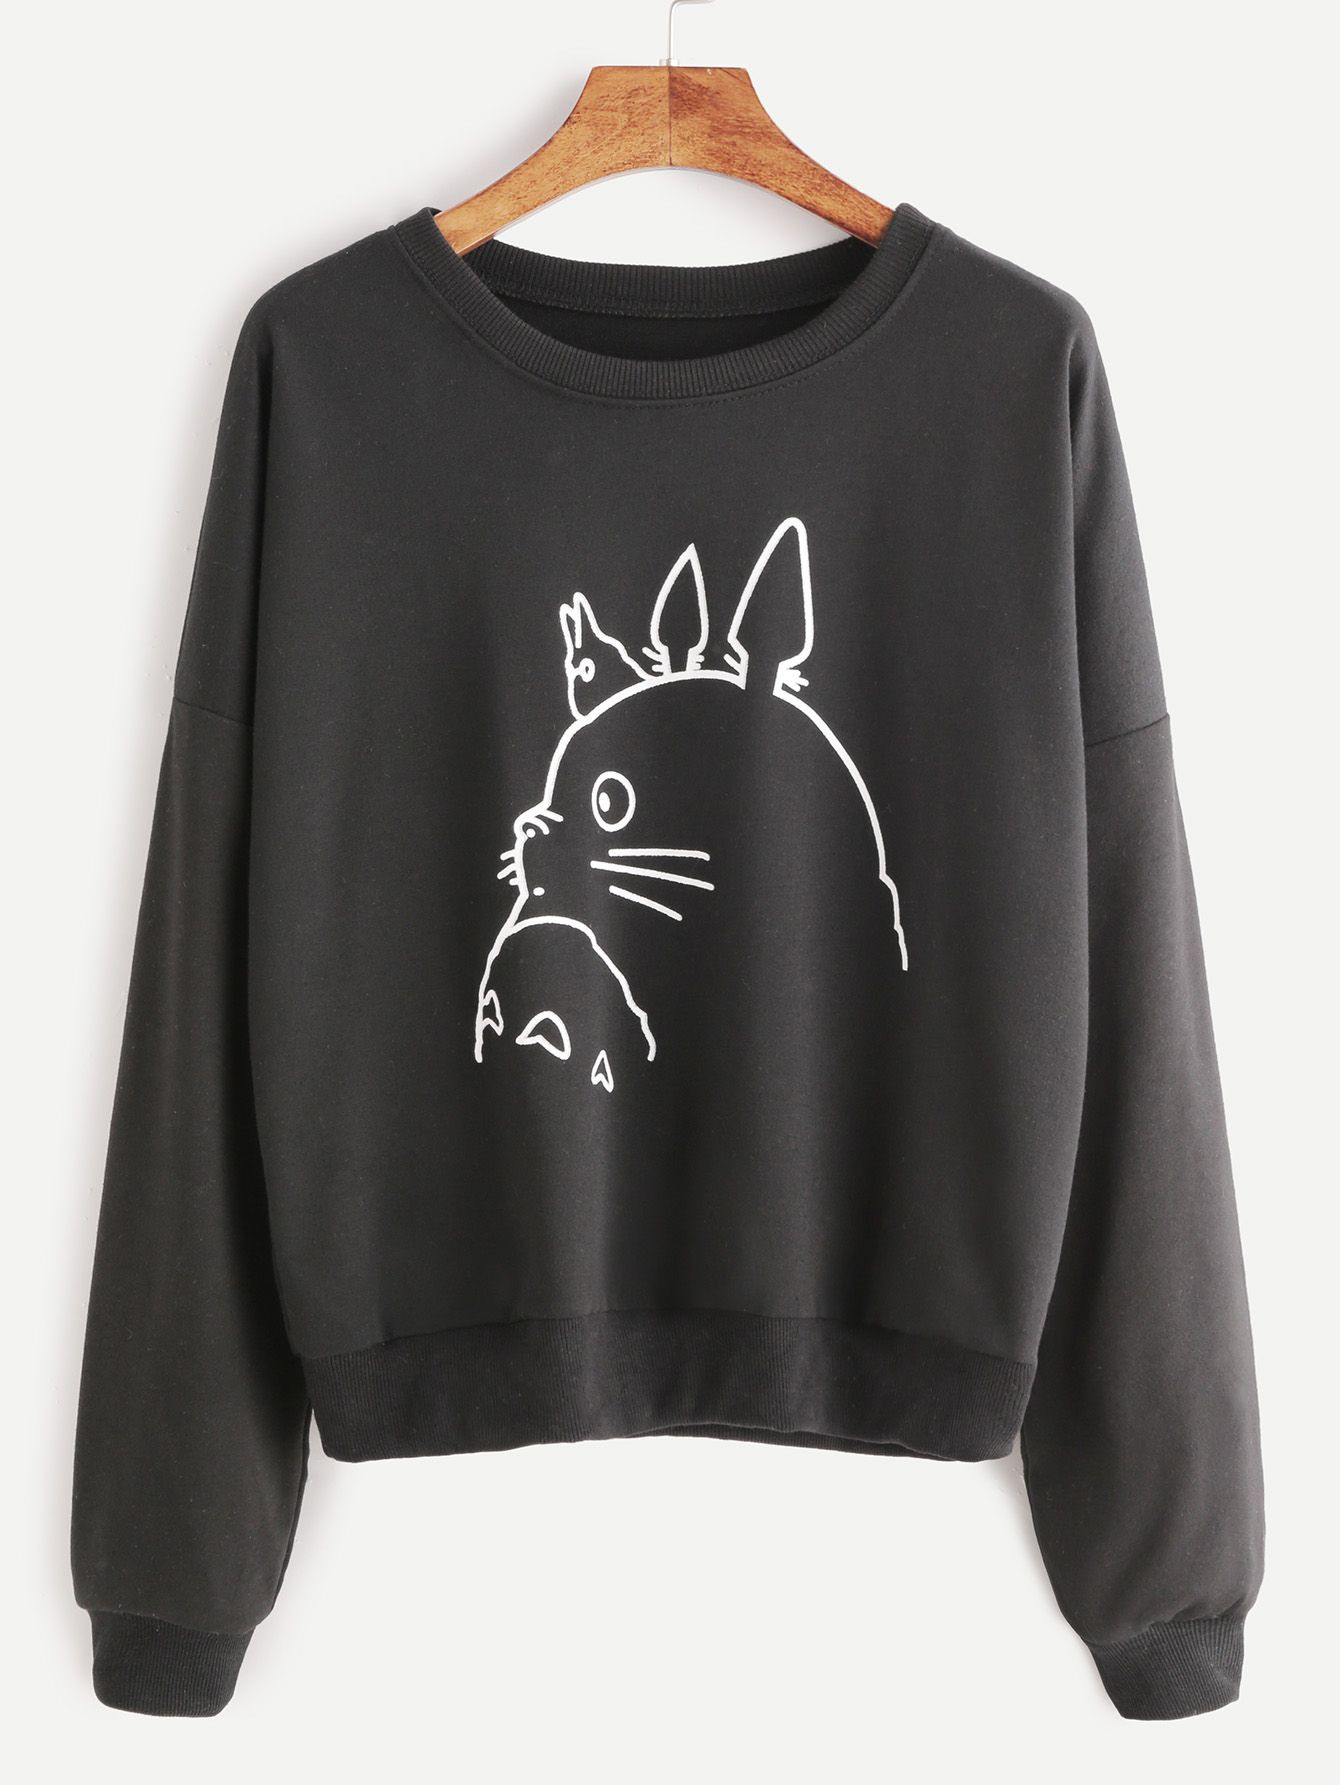 sweatshirt cartoon druck drop schulter-schwarz - german